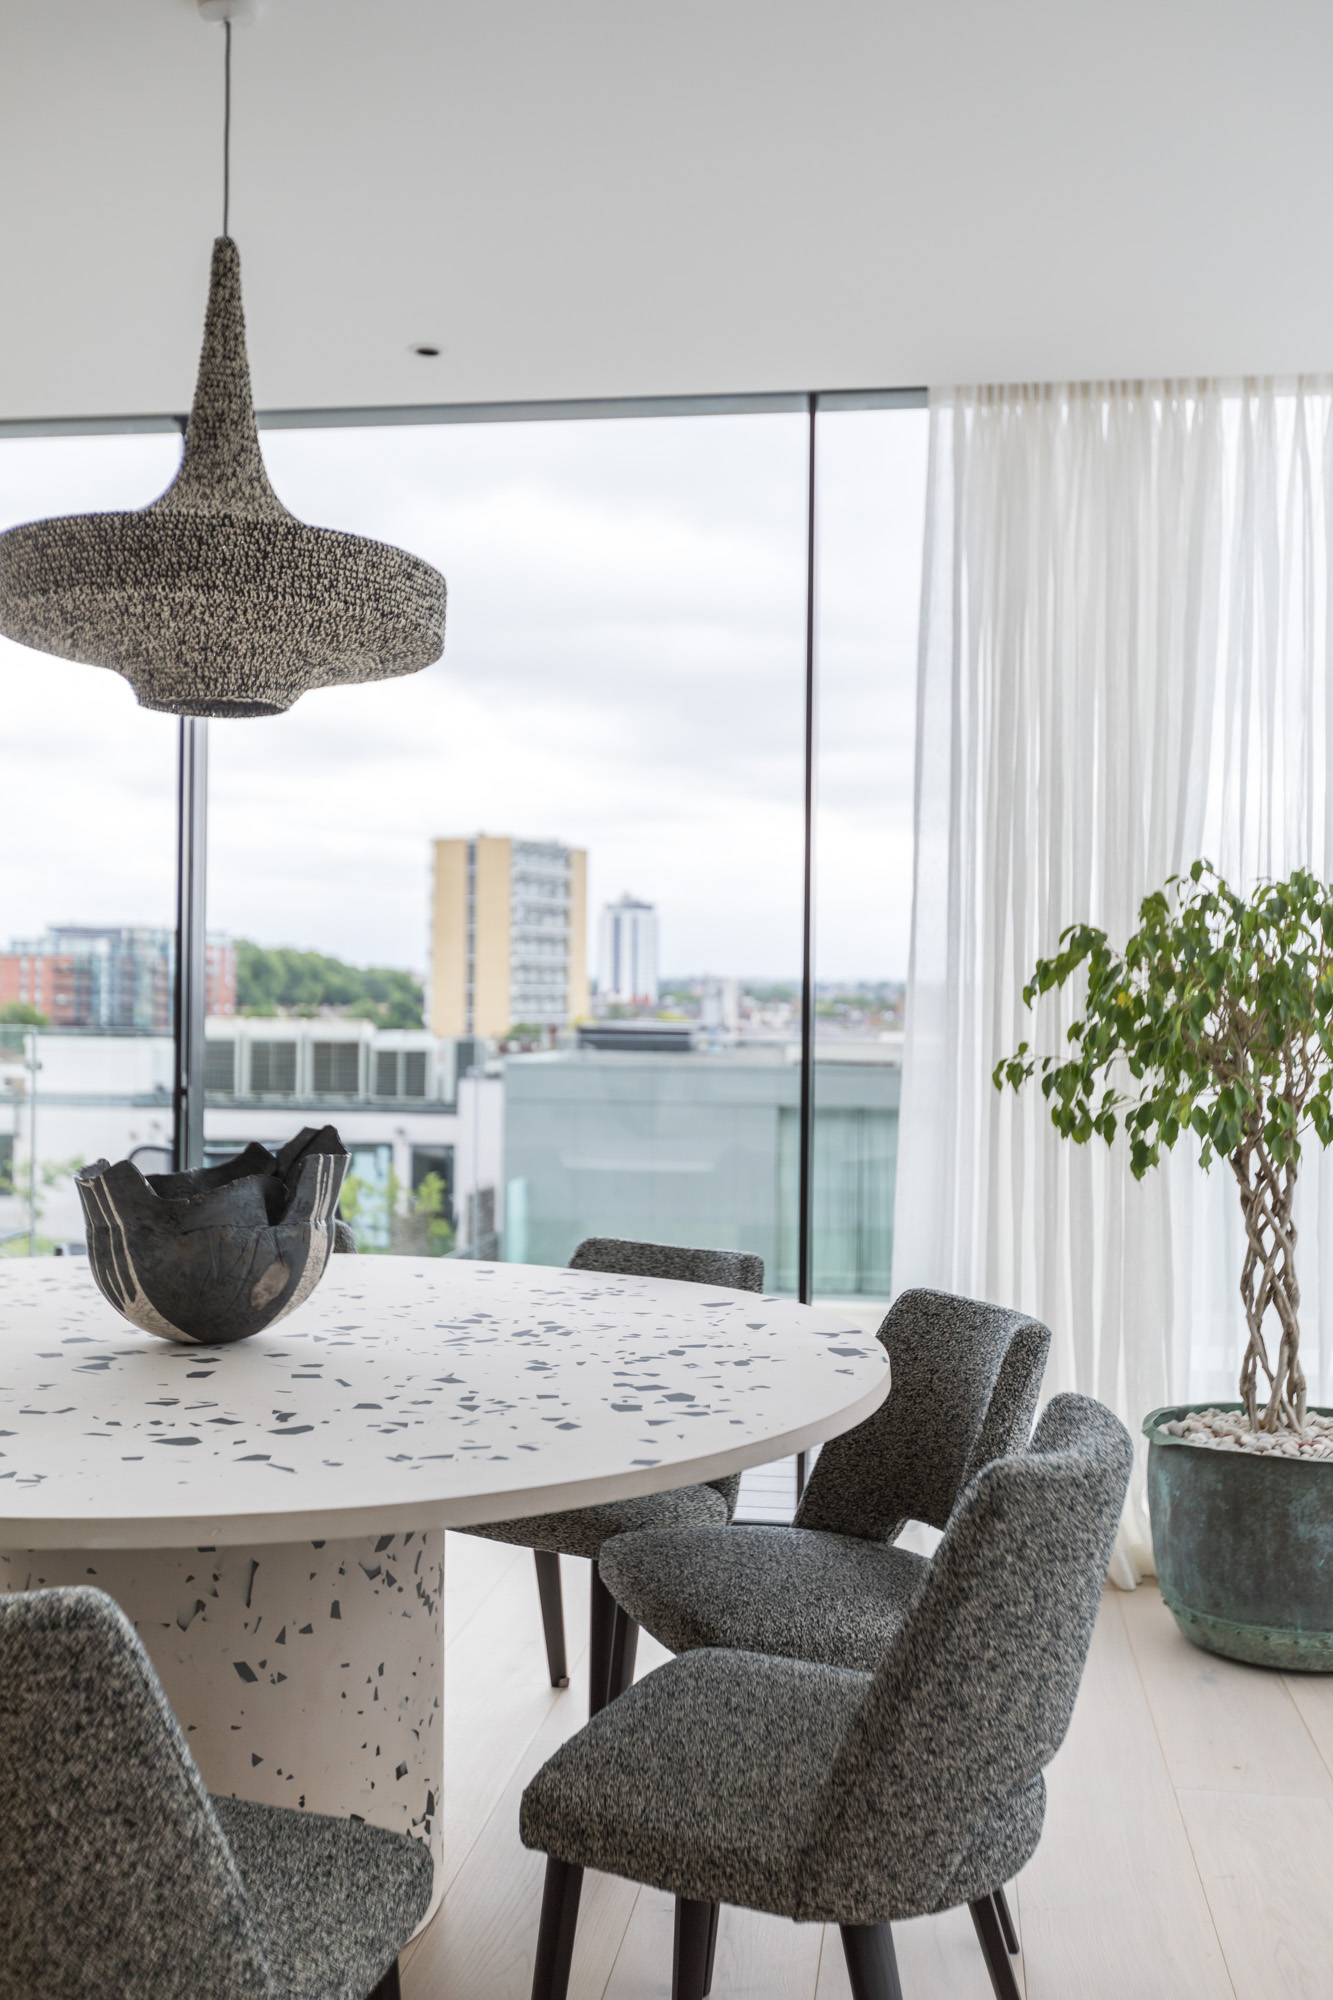 jonathan bond, interior photographer, round kitchen table view outside, battersea, london